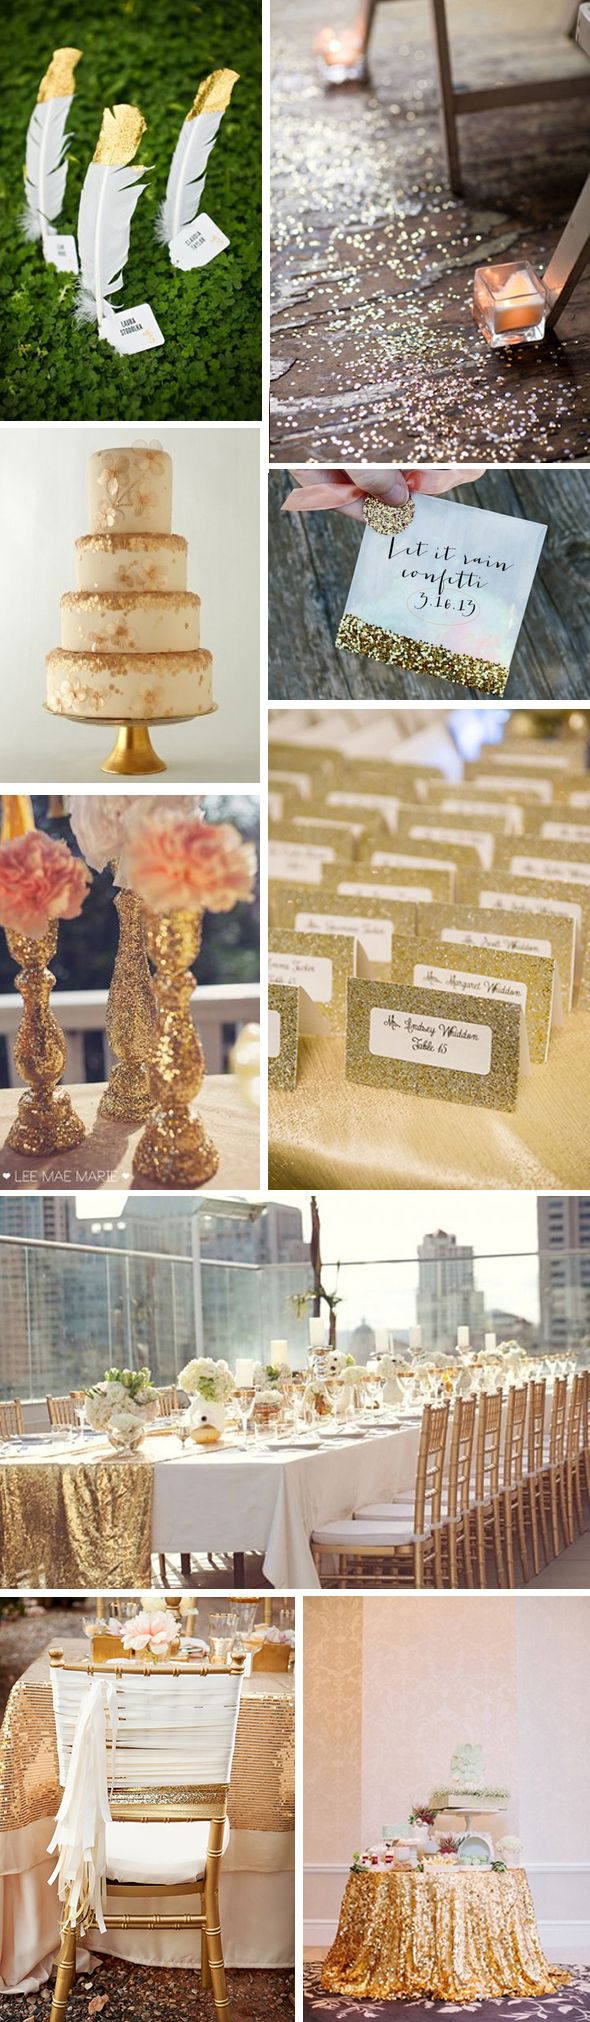 Glitter, glitter and more glitter! We can never get enough of it. From lining your aisle in glitter instead of petals, to a glitter-clad cake and escort cards dipped and dripping in the goodness, we highly recommend a little gold glitter on your wedding day!